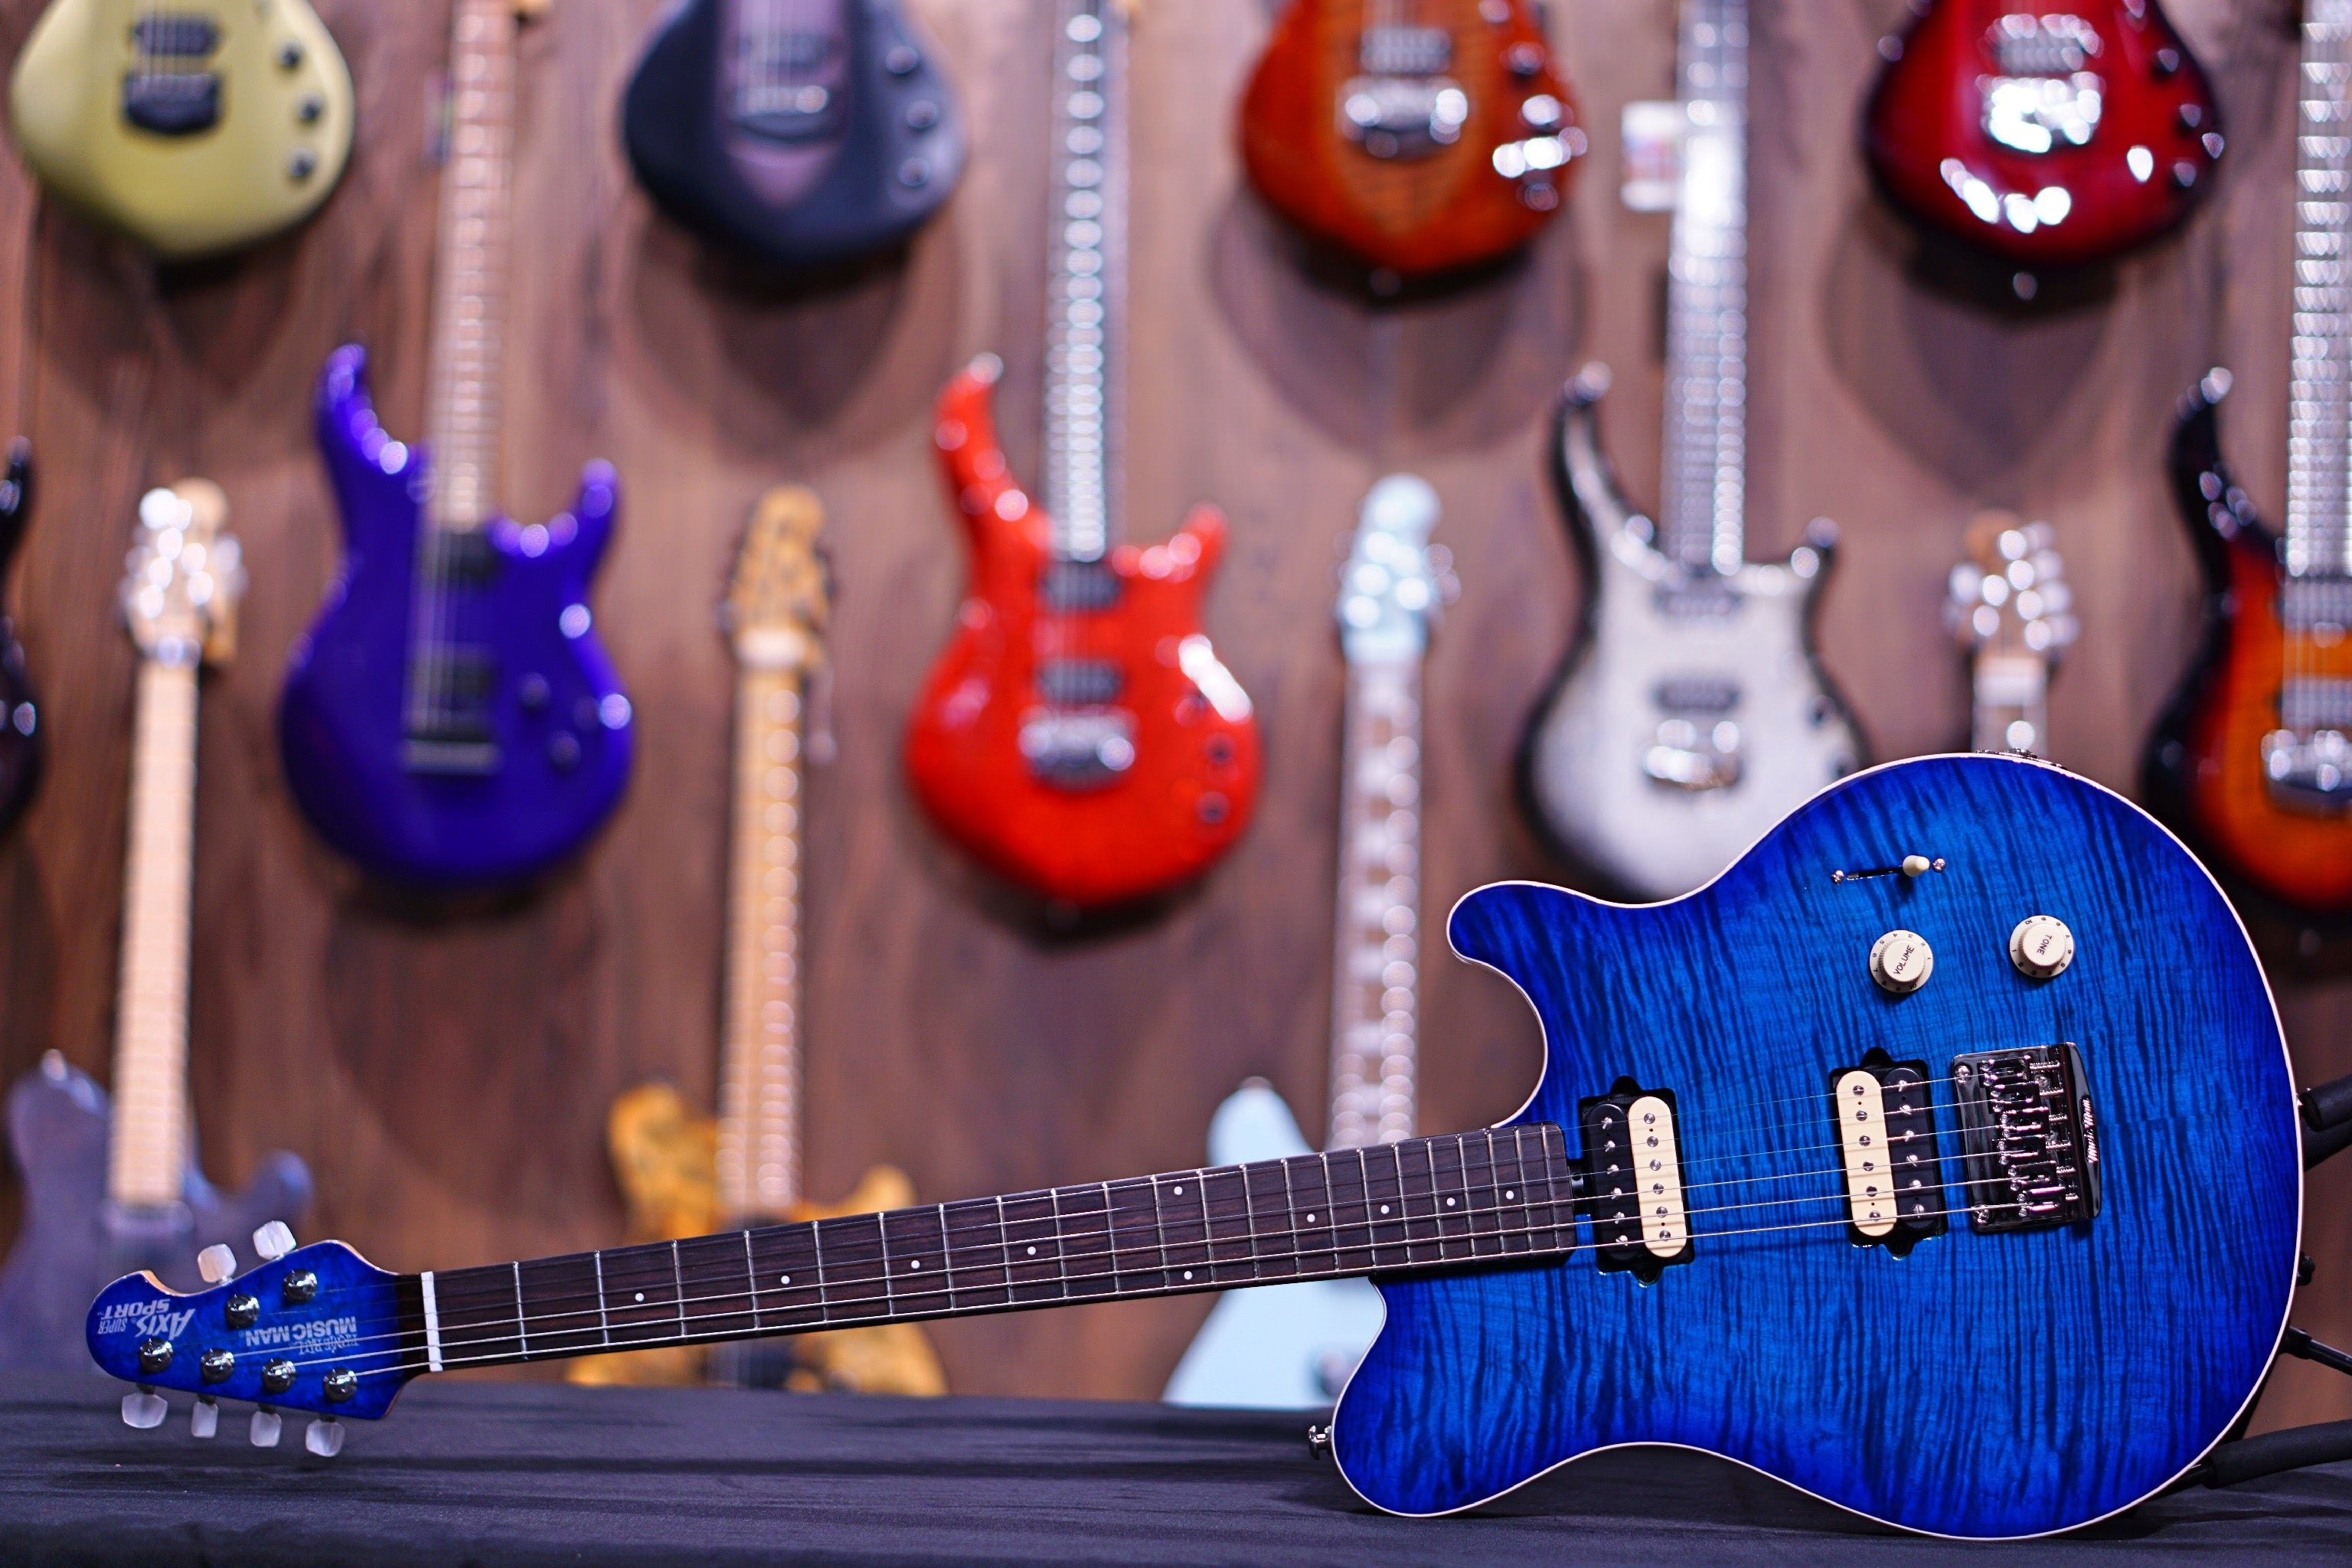 Ernie Ball Music Man Axis Super Sport HH STD - Balboa Blue Flame - Rosewood Matching Headstock G95058